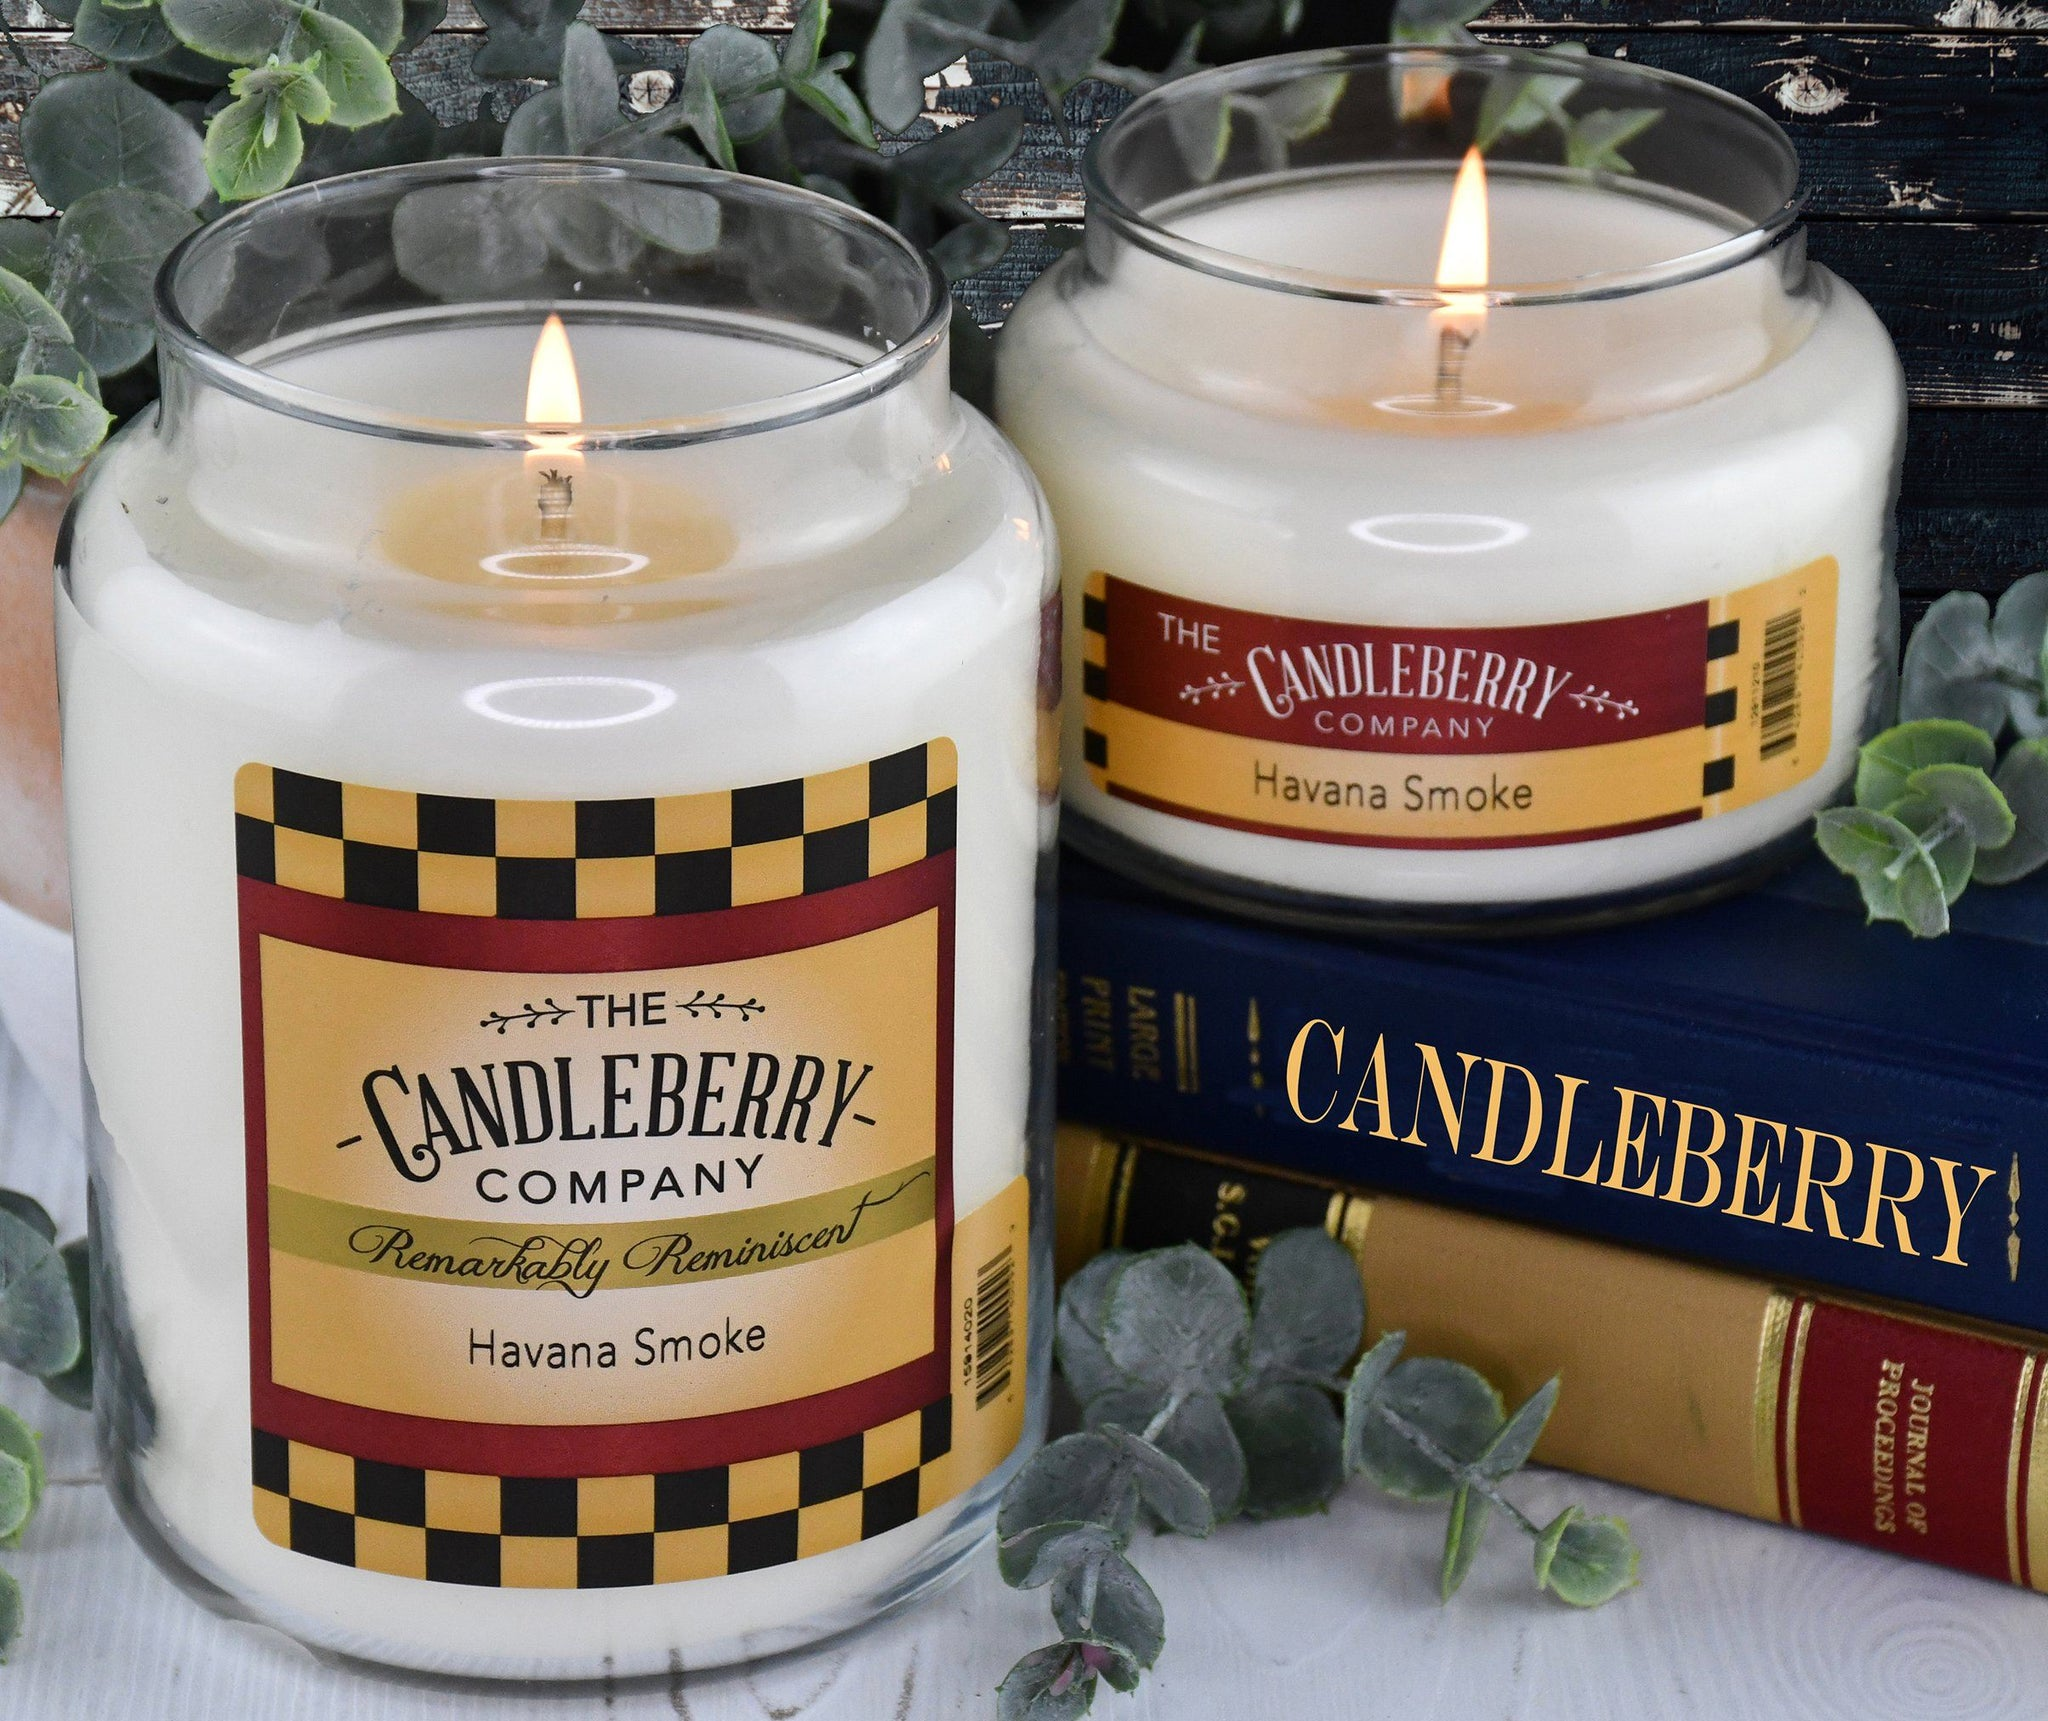 Havana Smoke™, 26 oz. Jar, Scented Candle 26 oz. Large Jar Candle The Candleberry Candle Company